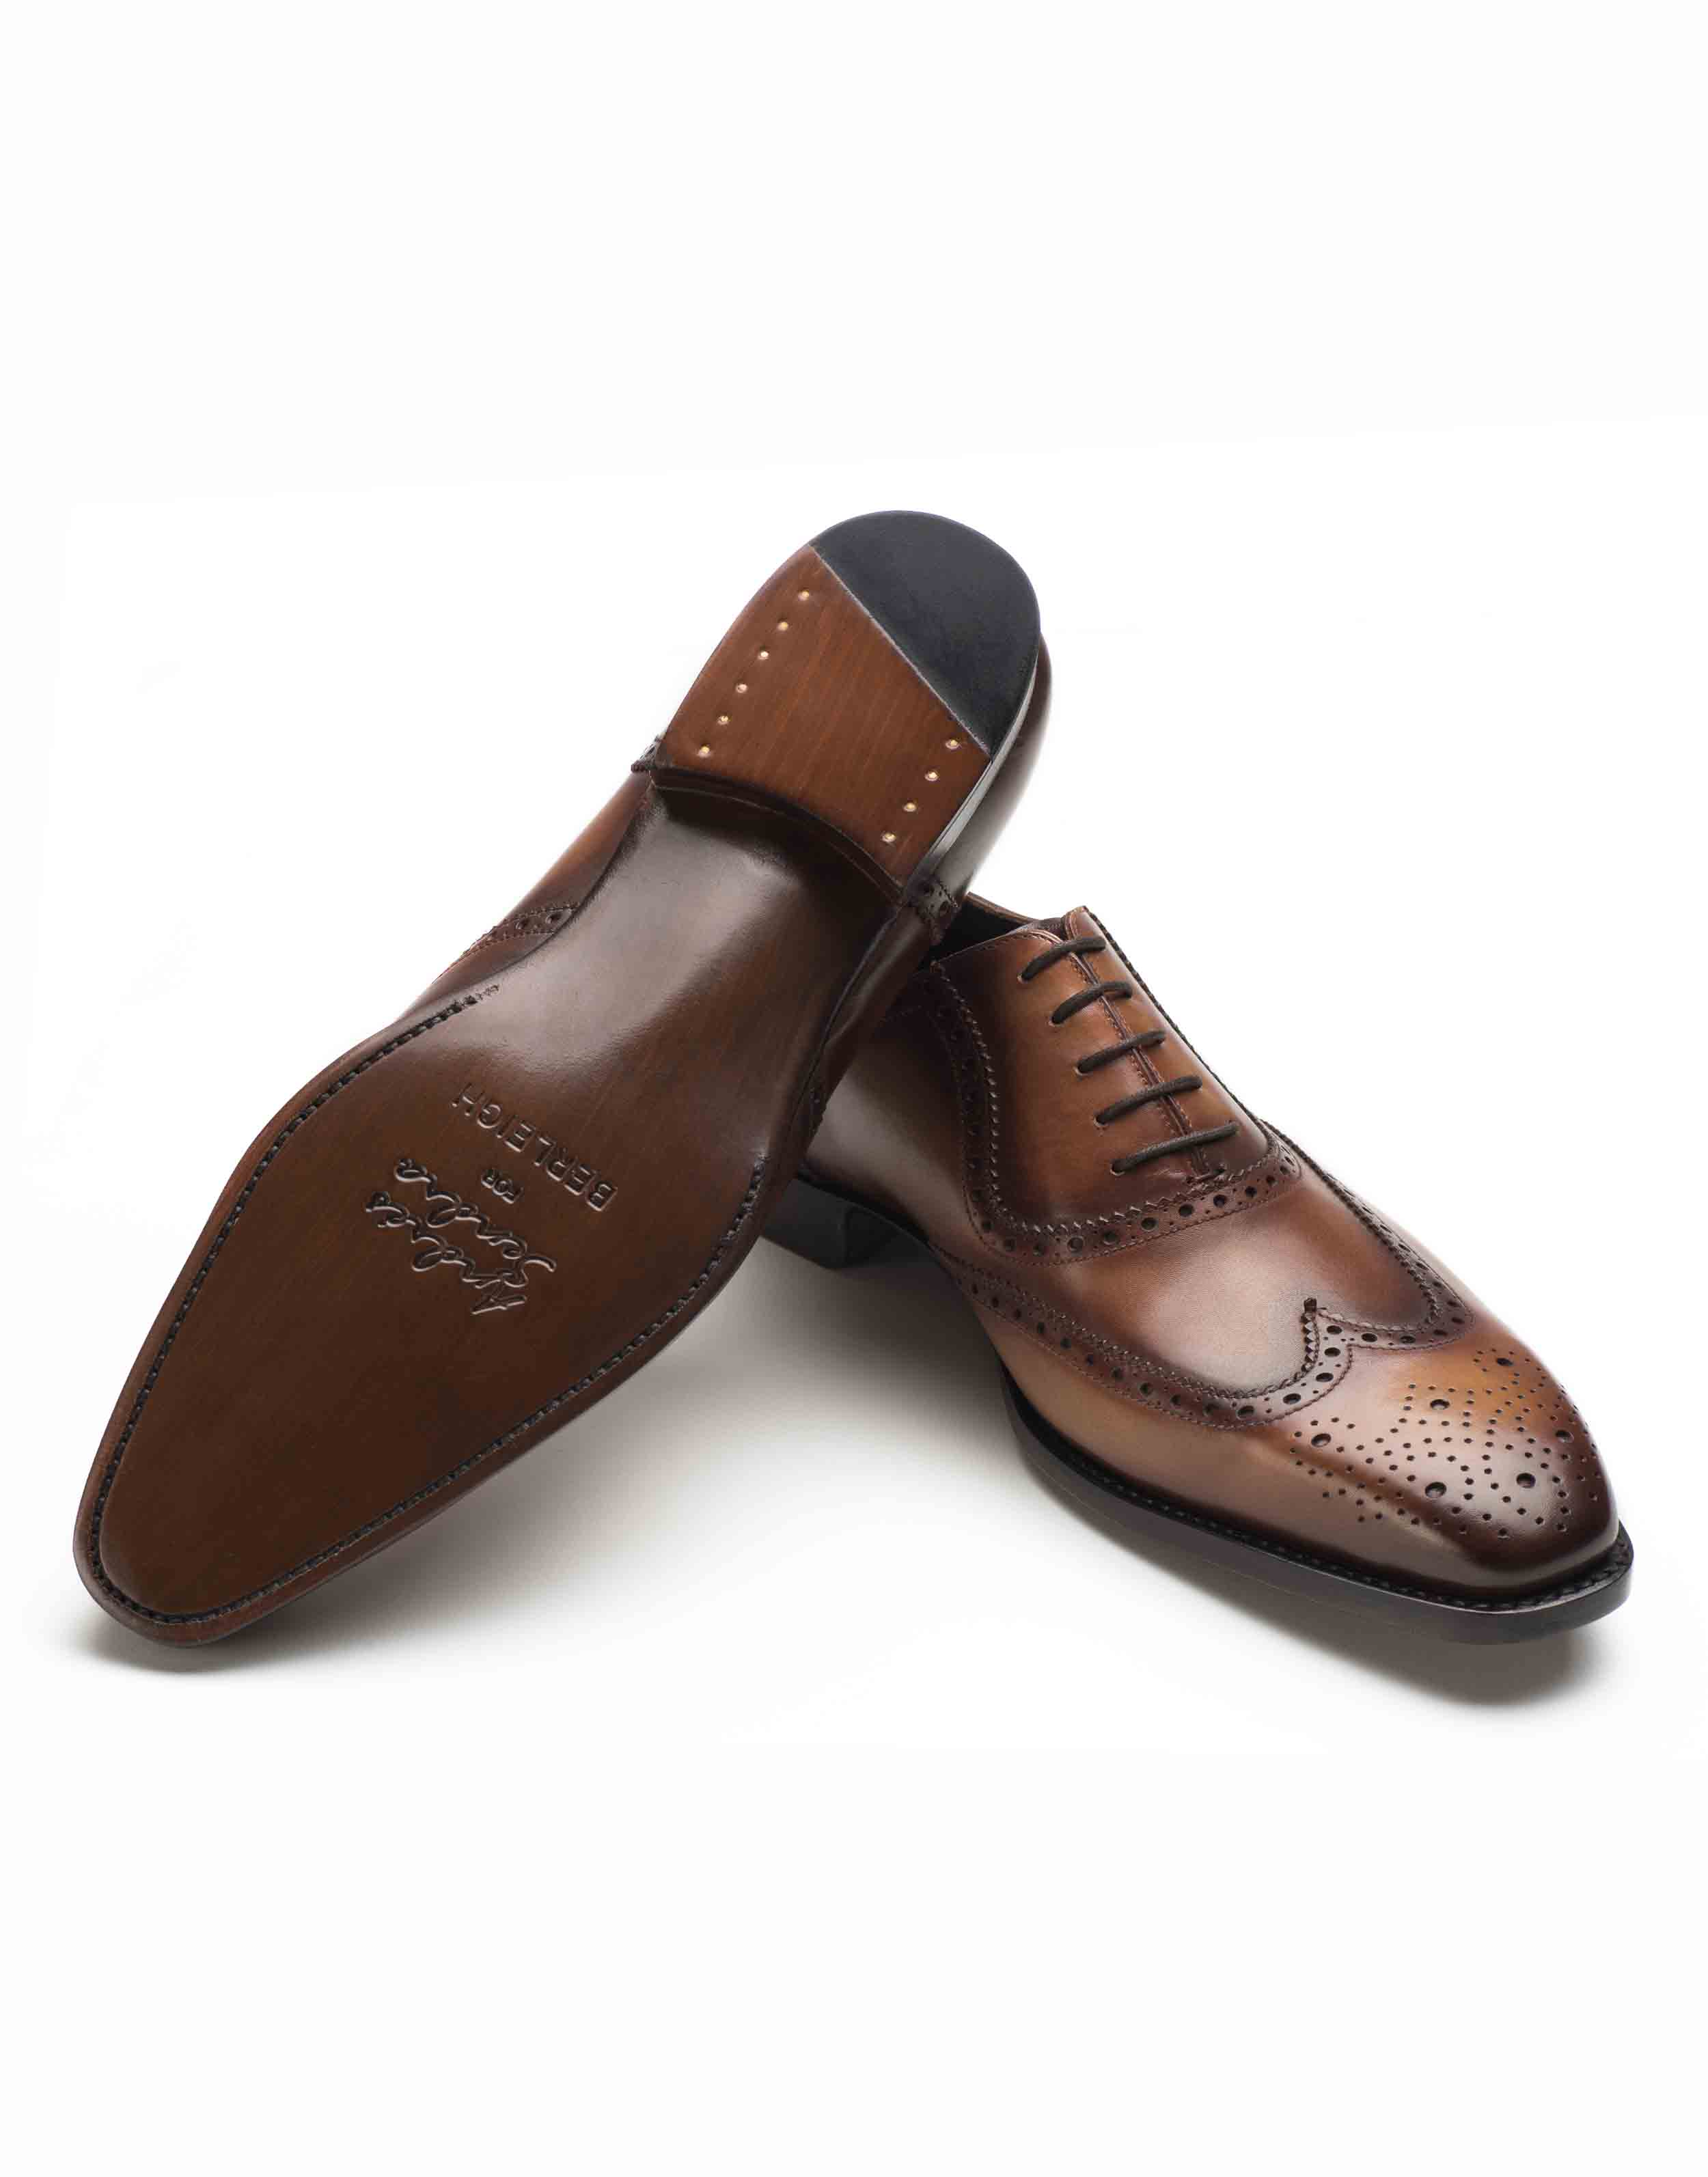 COGNAC BROGUE OXFORD SHOE3